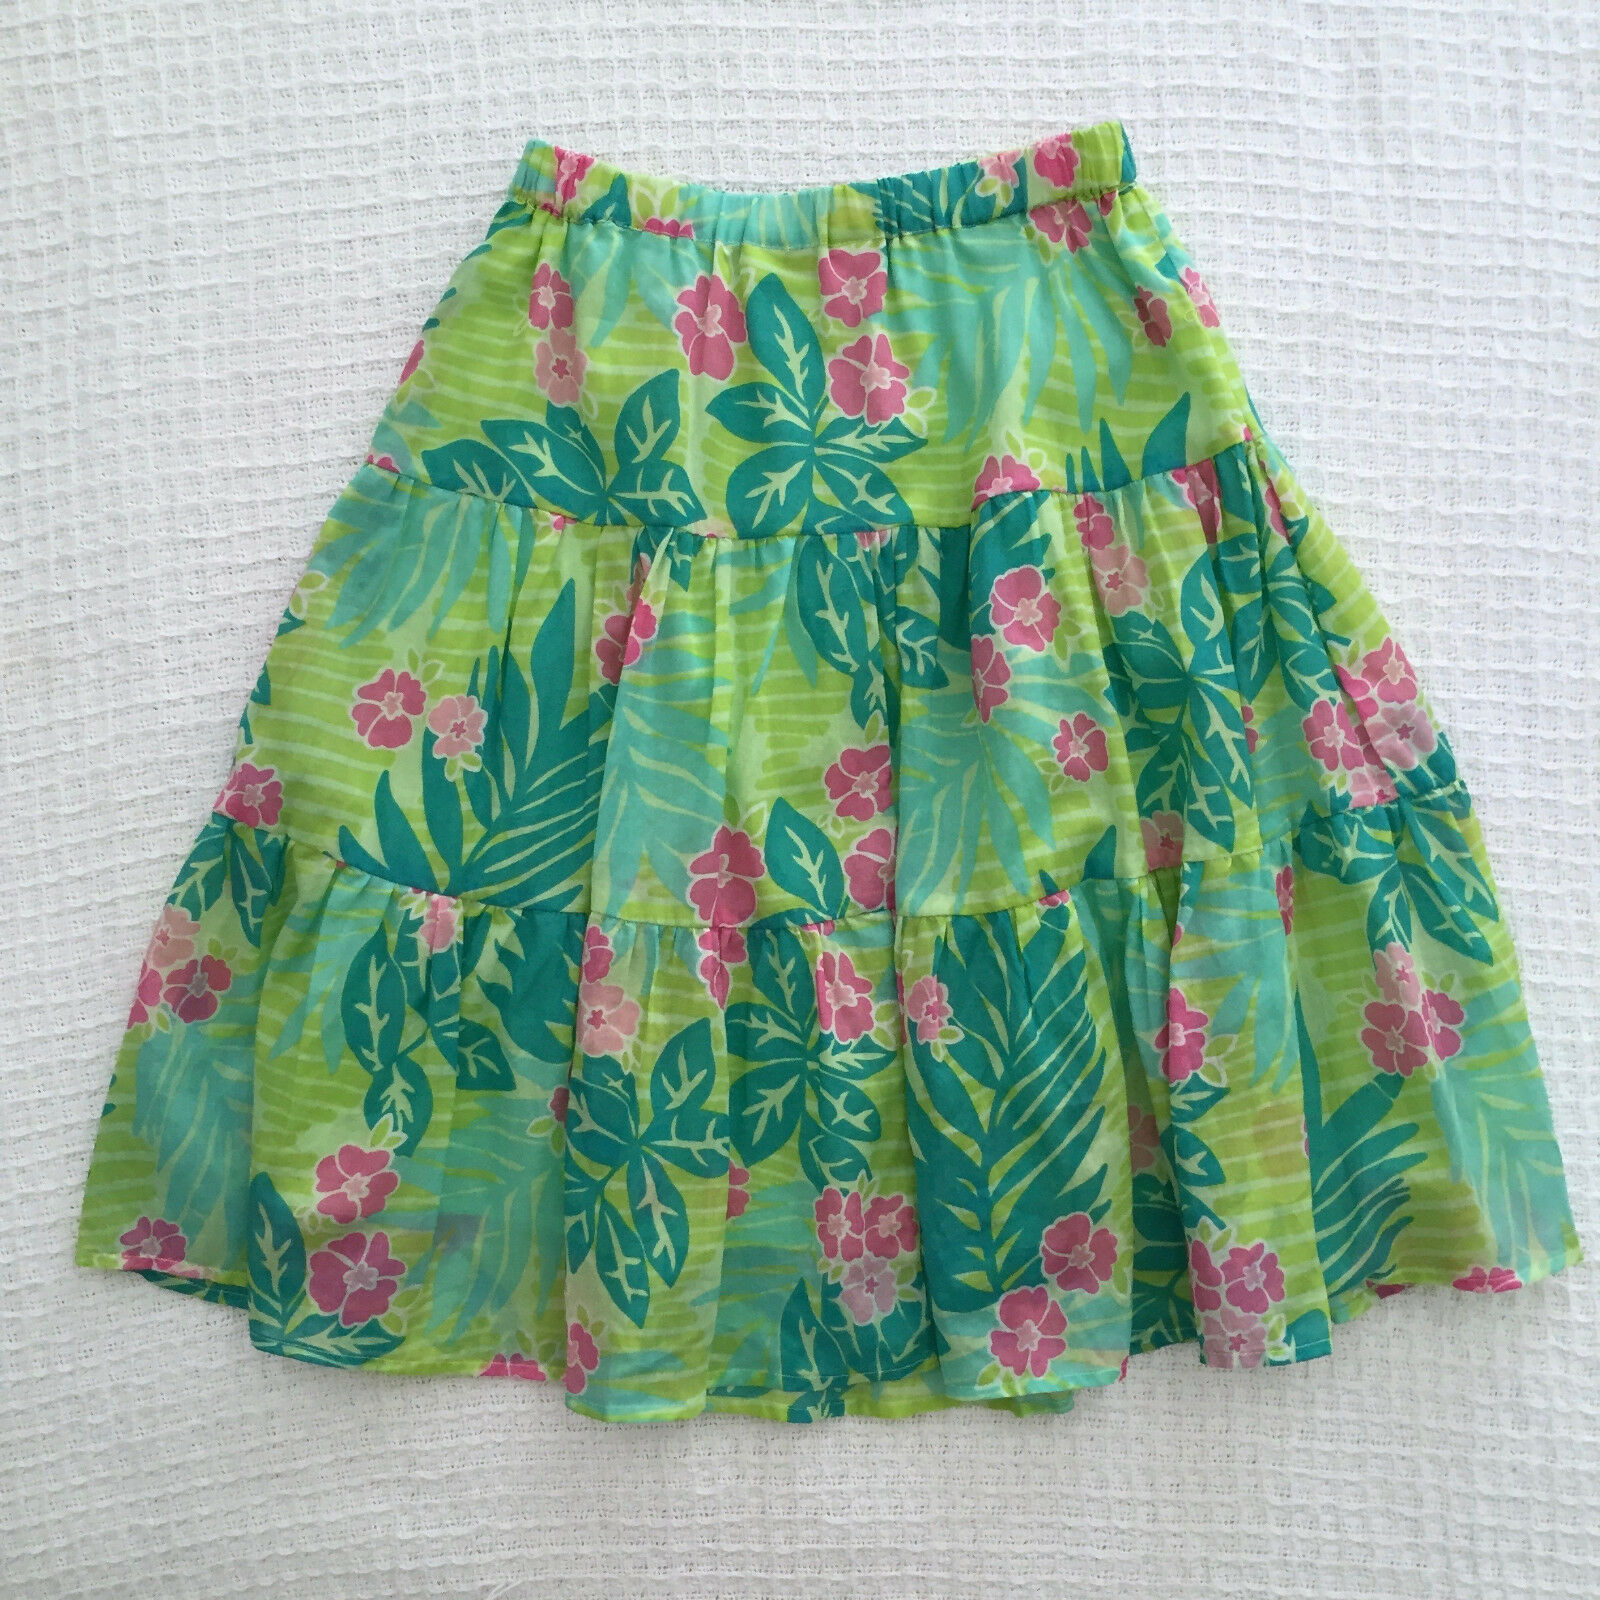 RARE LILLY PULITZER Womens Cotton Floral Print Tiered Skirt Sz XS